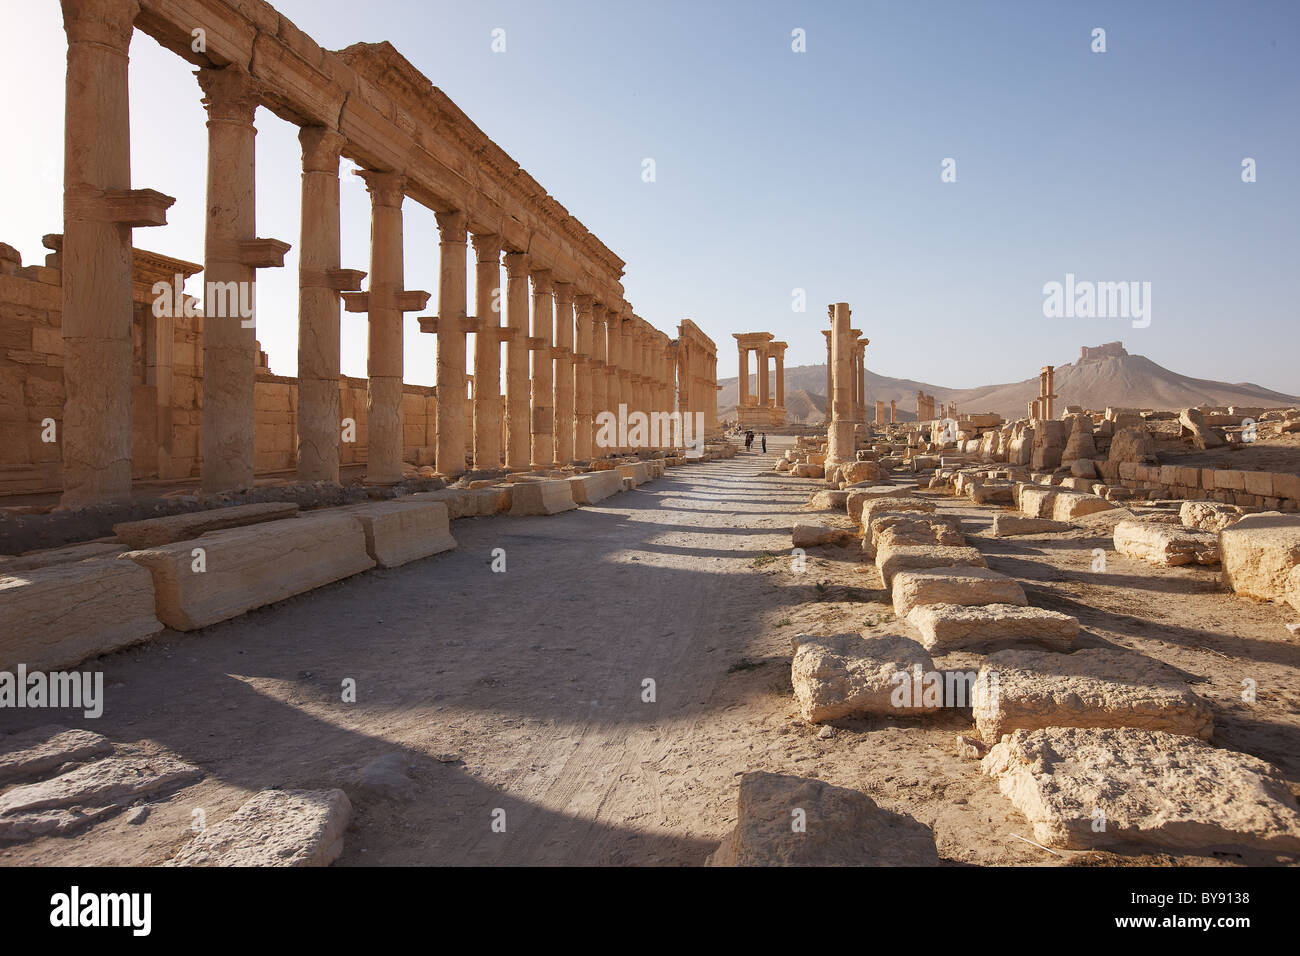 The Grand Colonnaded Street, Palmyra with the Qal'at Ibn Ma'an fortress in backround, Syria. - Stock Image